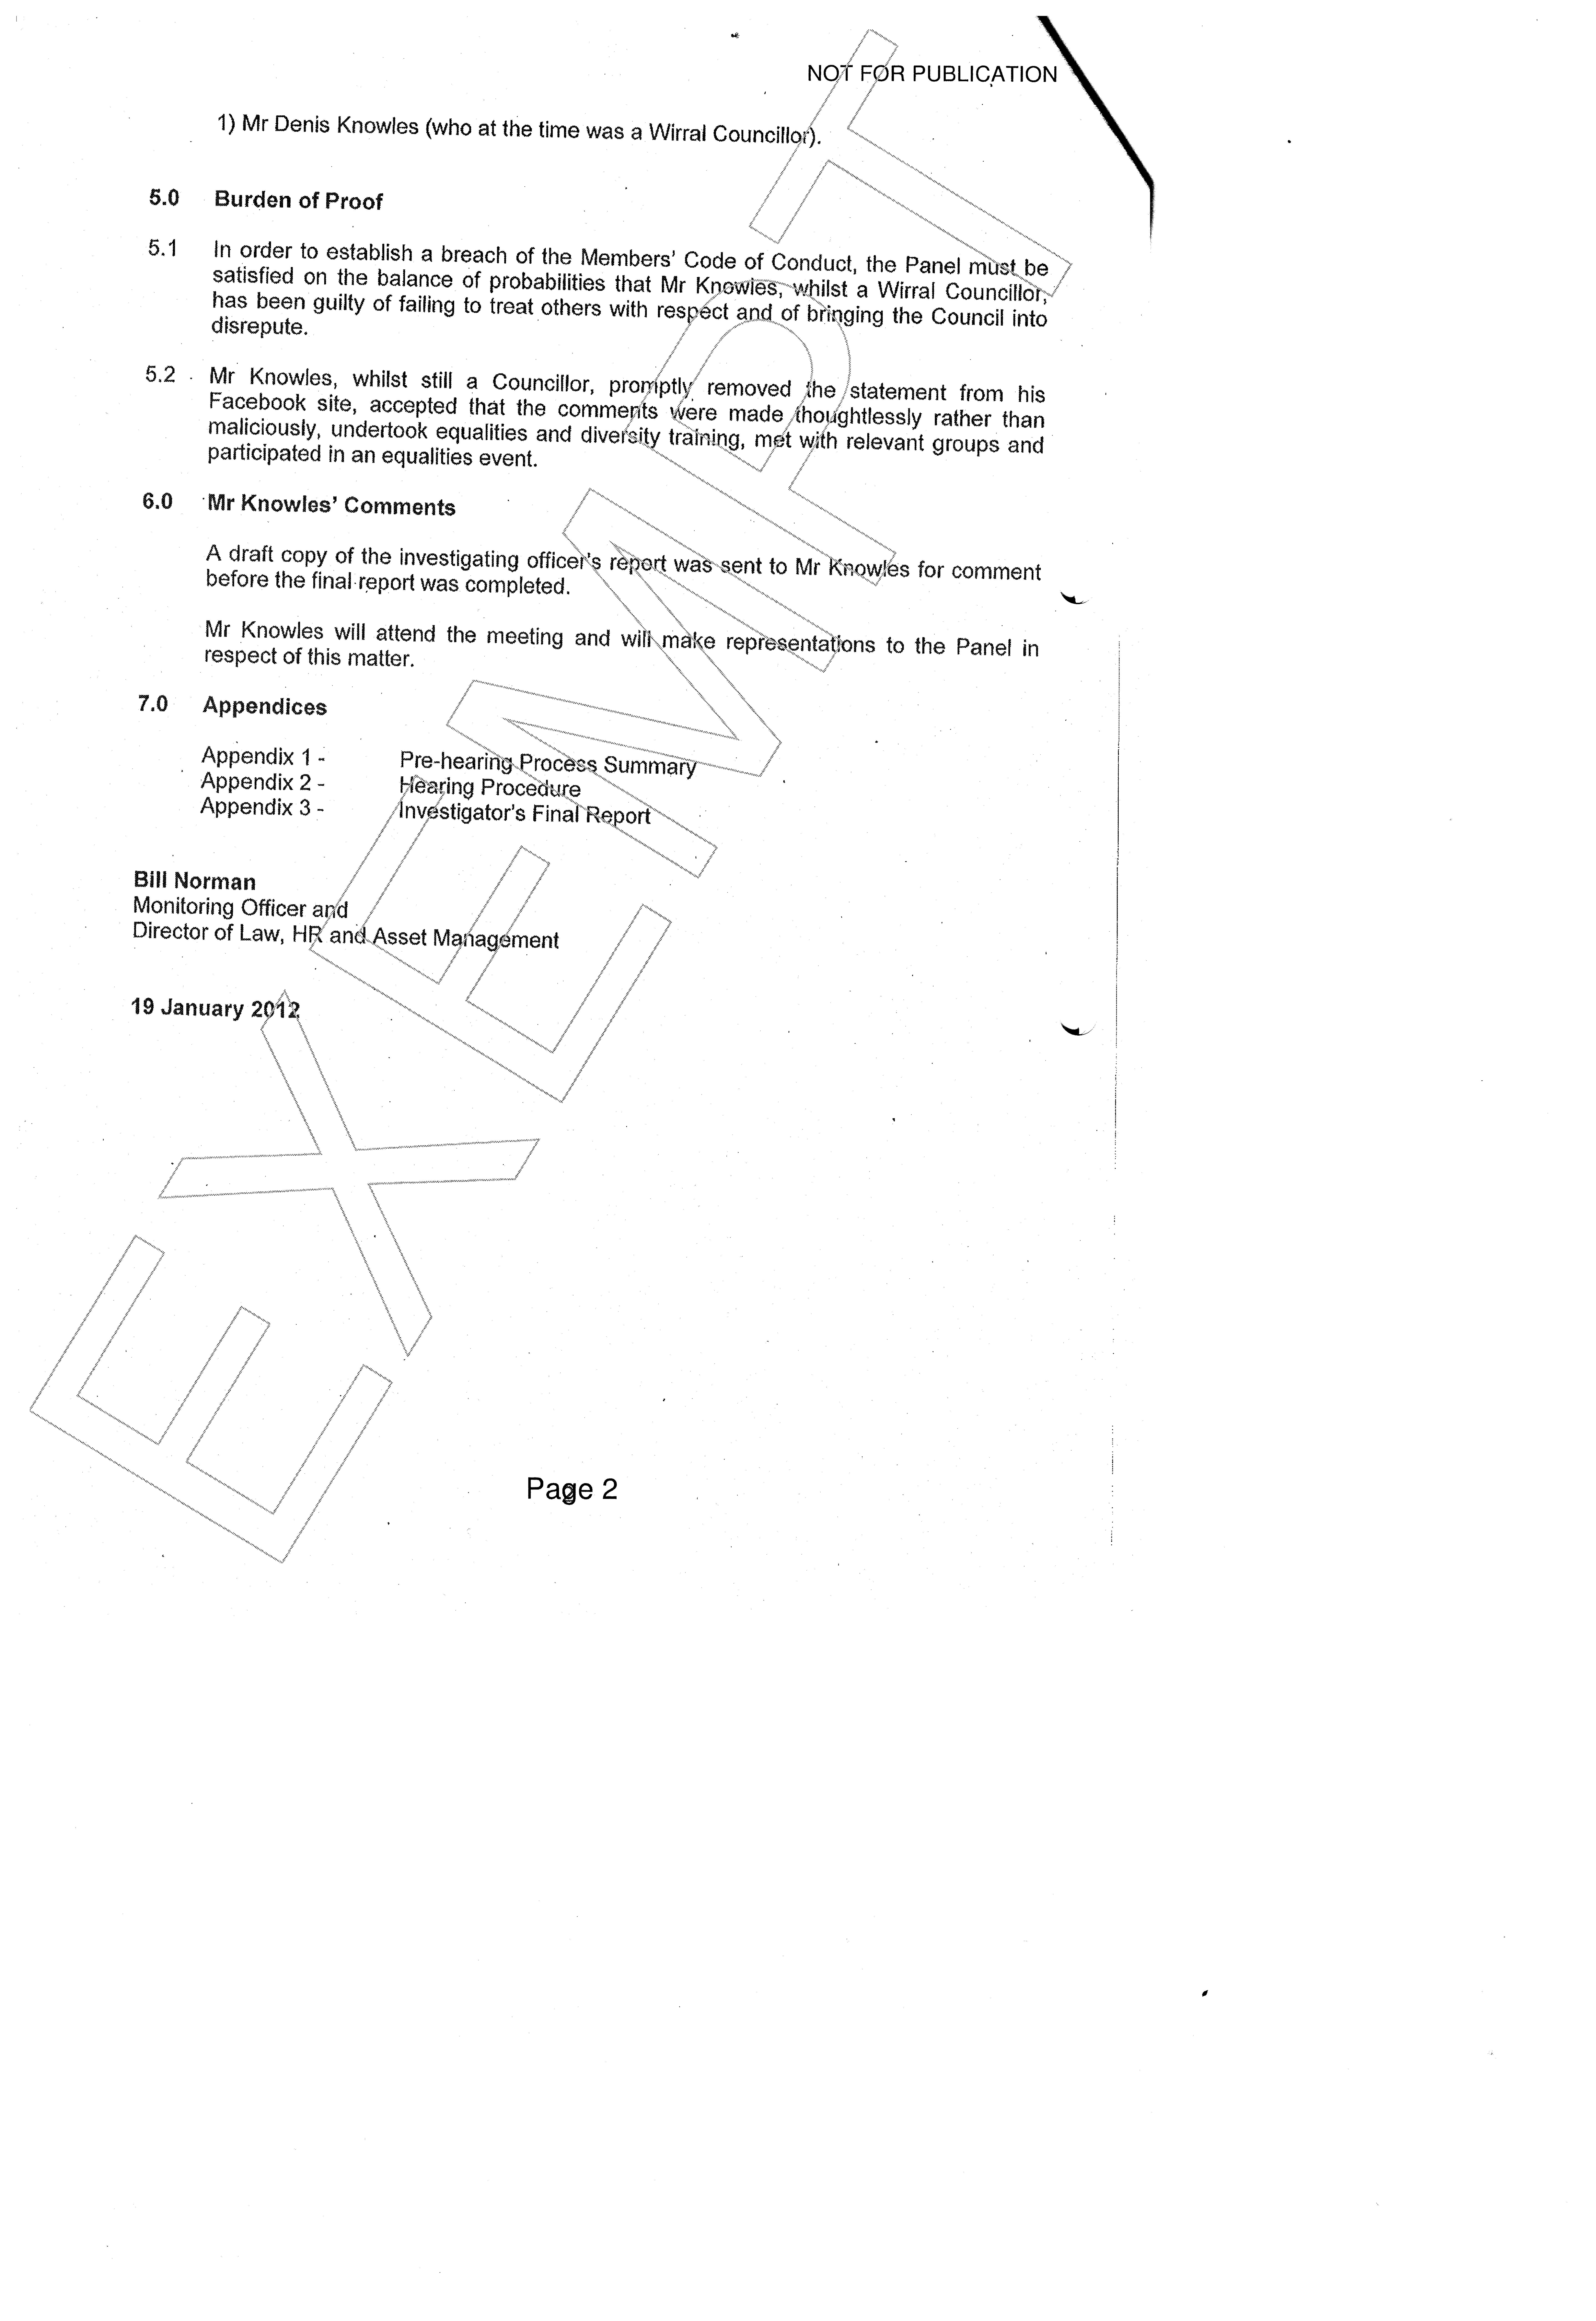 Agenda Item 3 Report of the Monitoring Officer Page 3 of 7